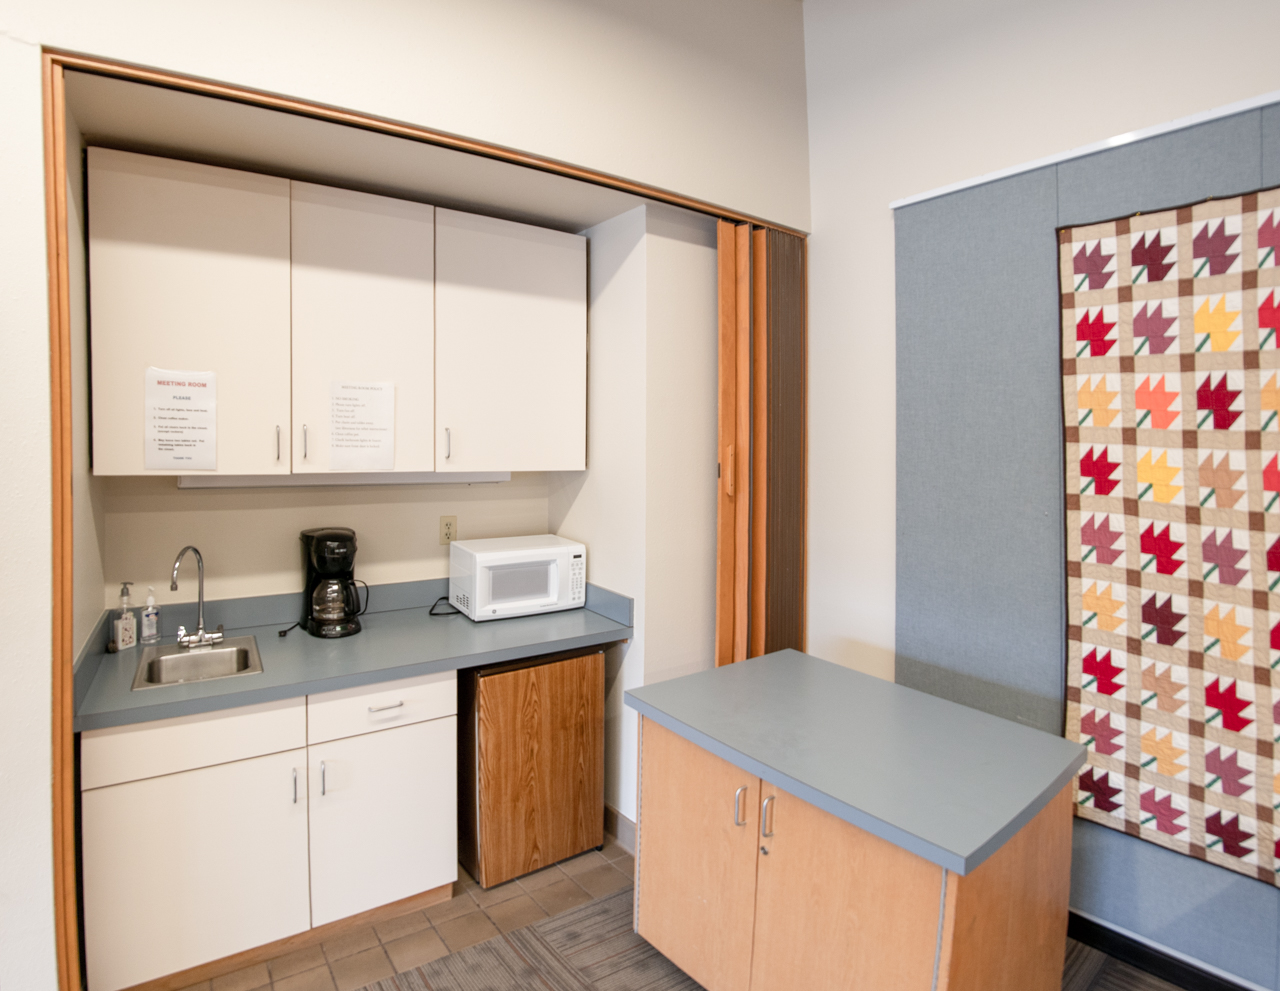 Fraley Room Kitchenette